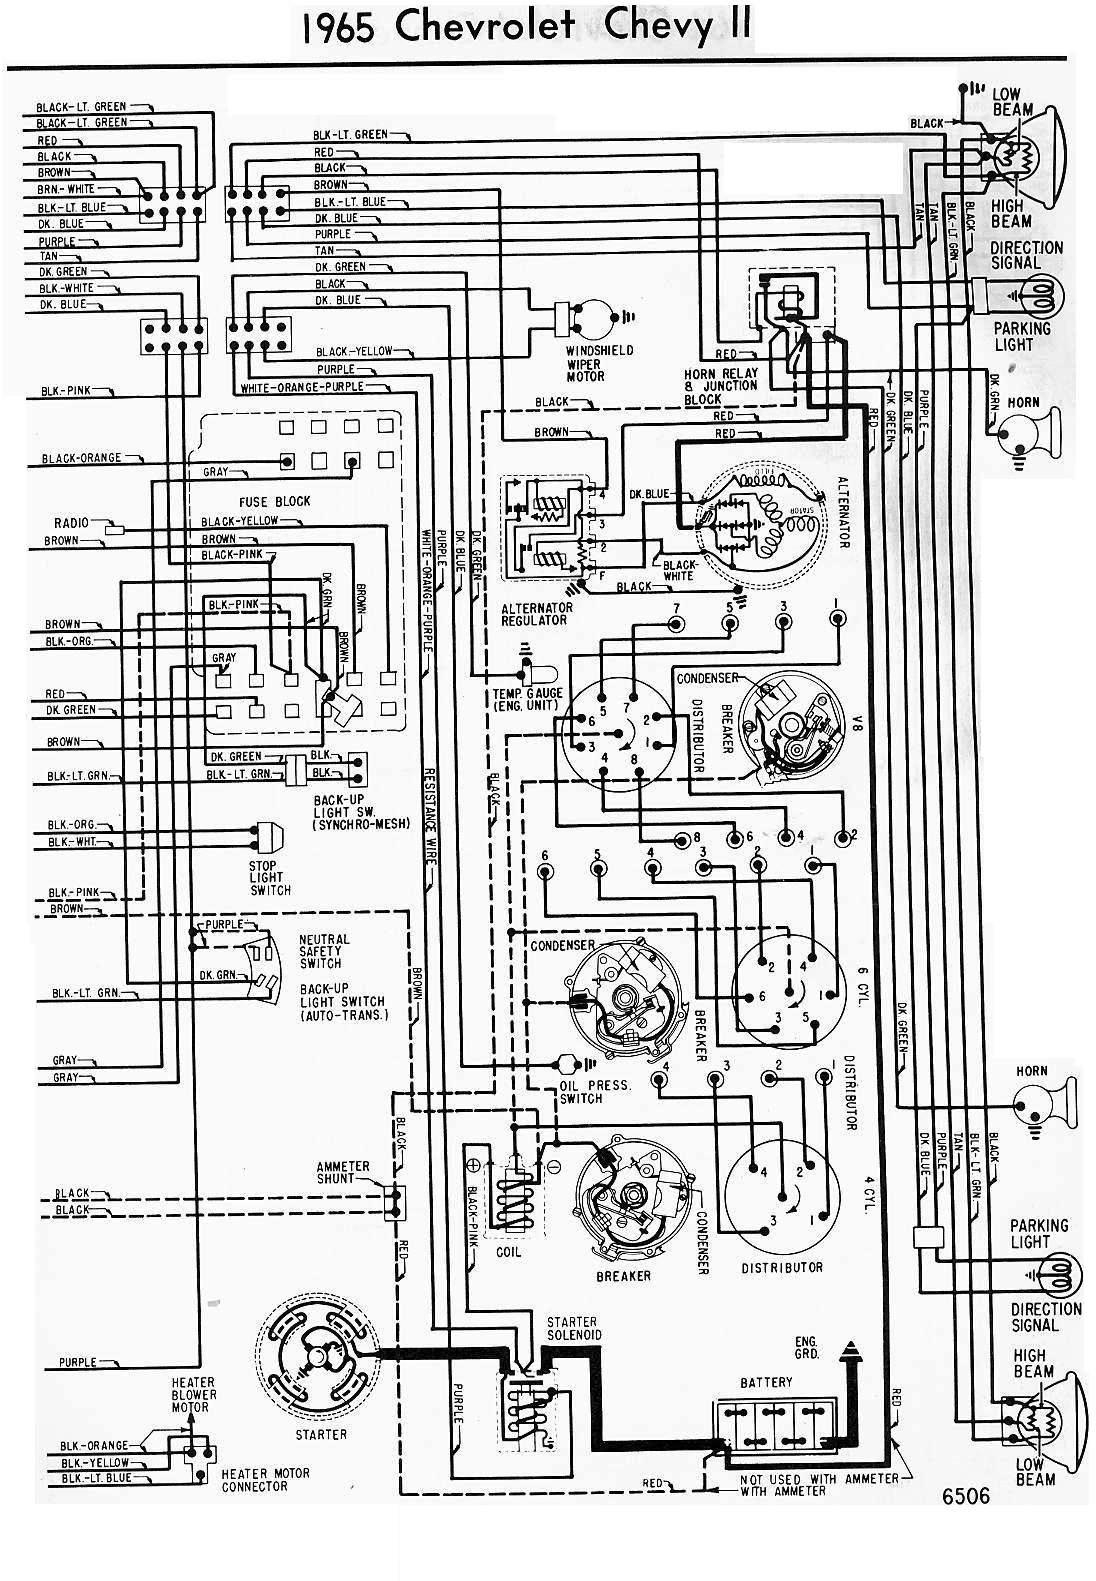 1965 C10 Wiring Diagram Schematic Smart Diagrams Harness Chevrolet Chevy Ii All About 65 Malibu